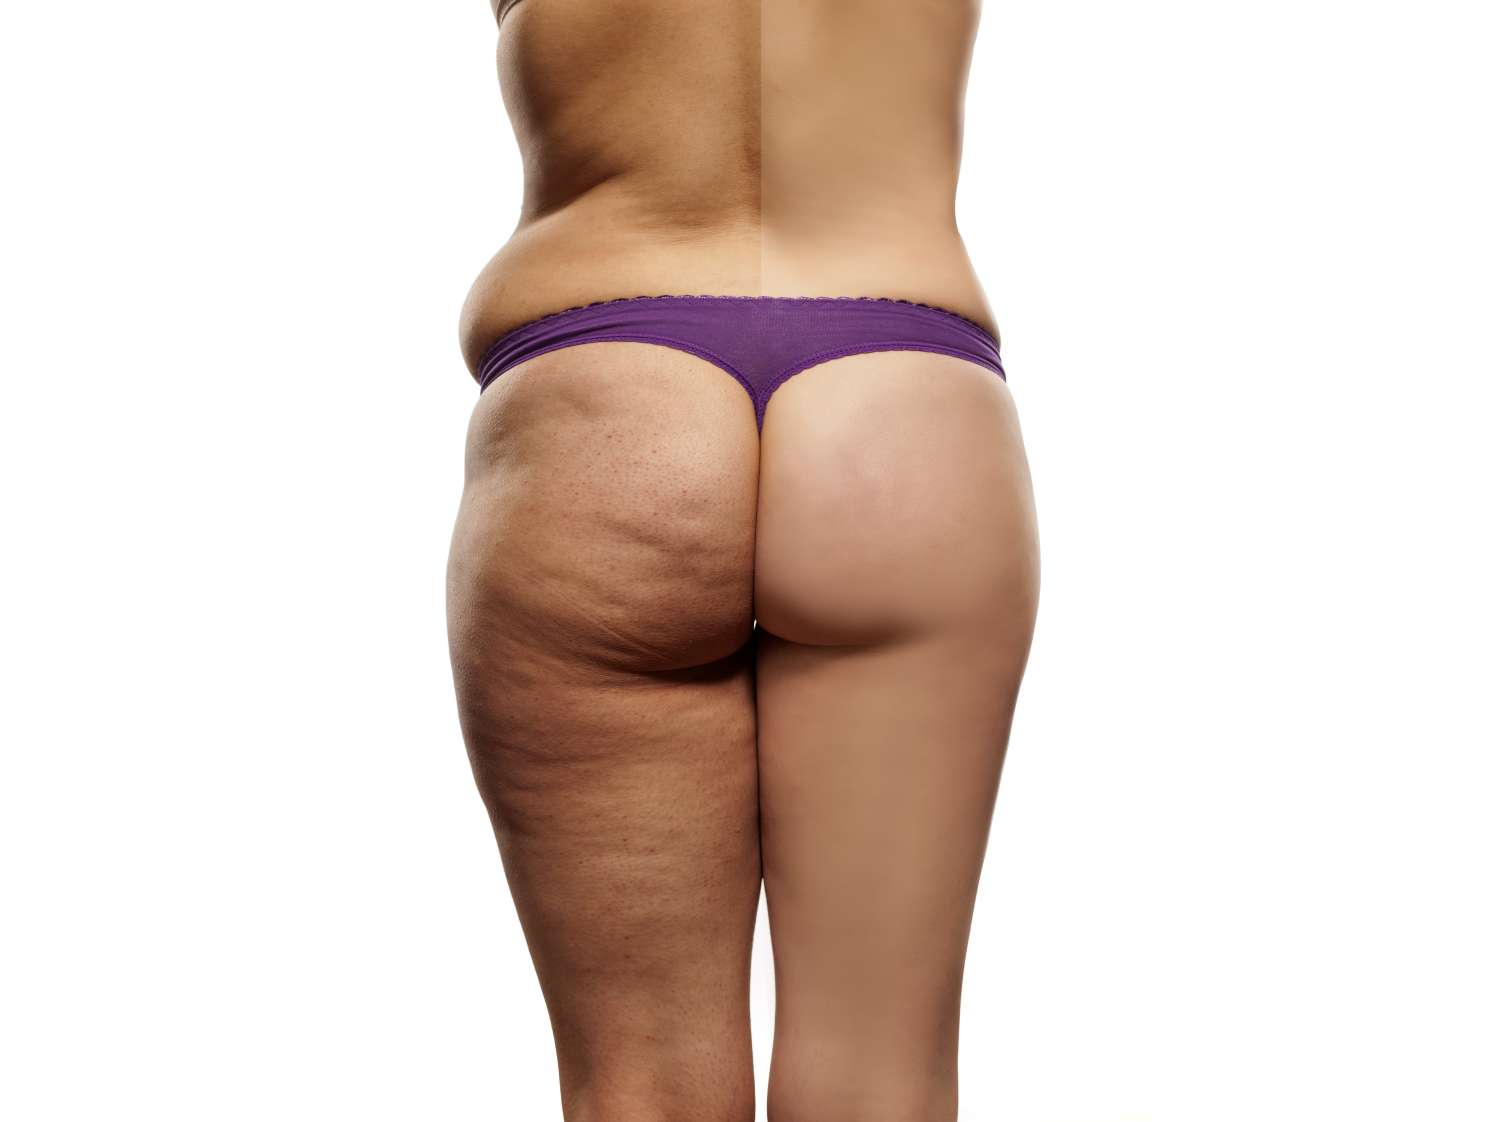 Expectations after a buttock enhancement procedure